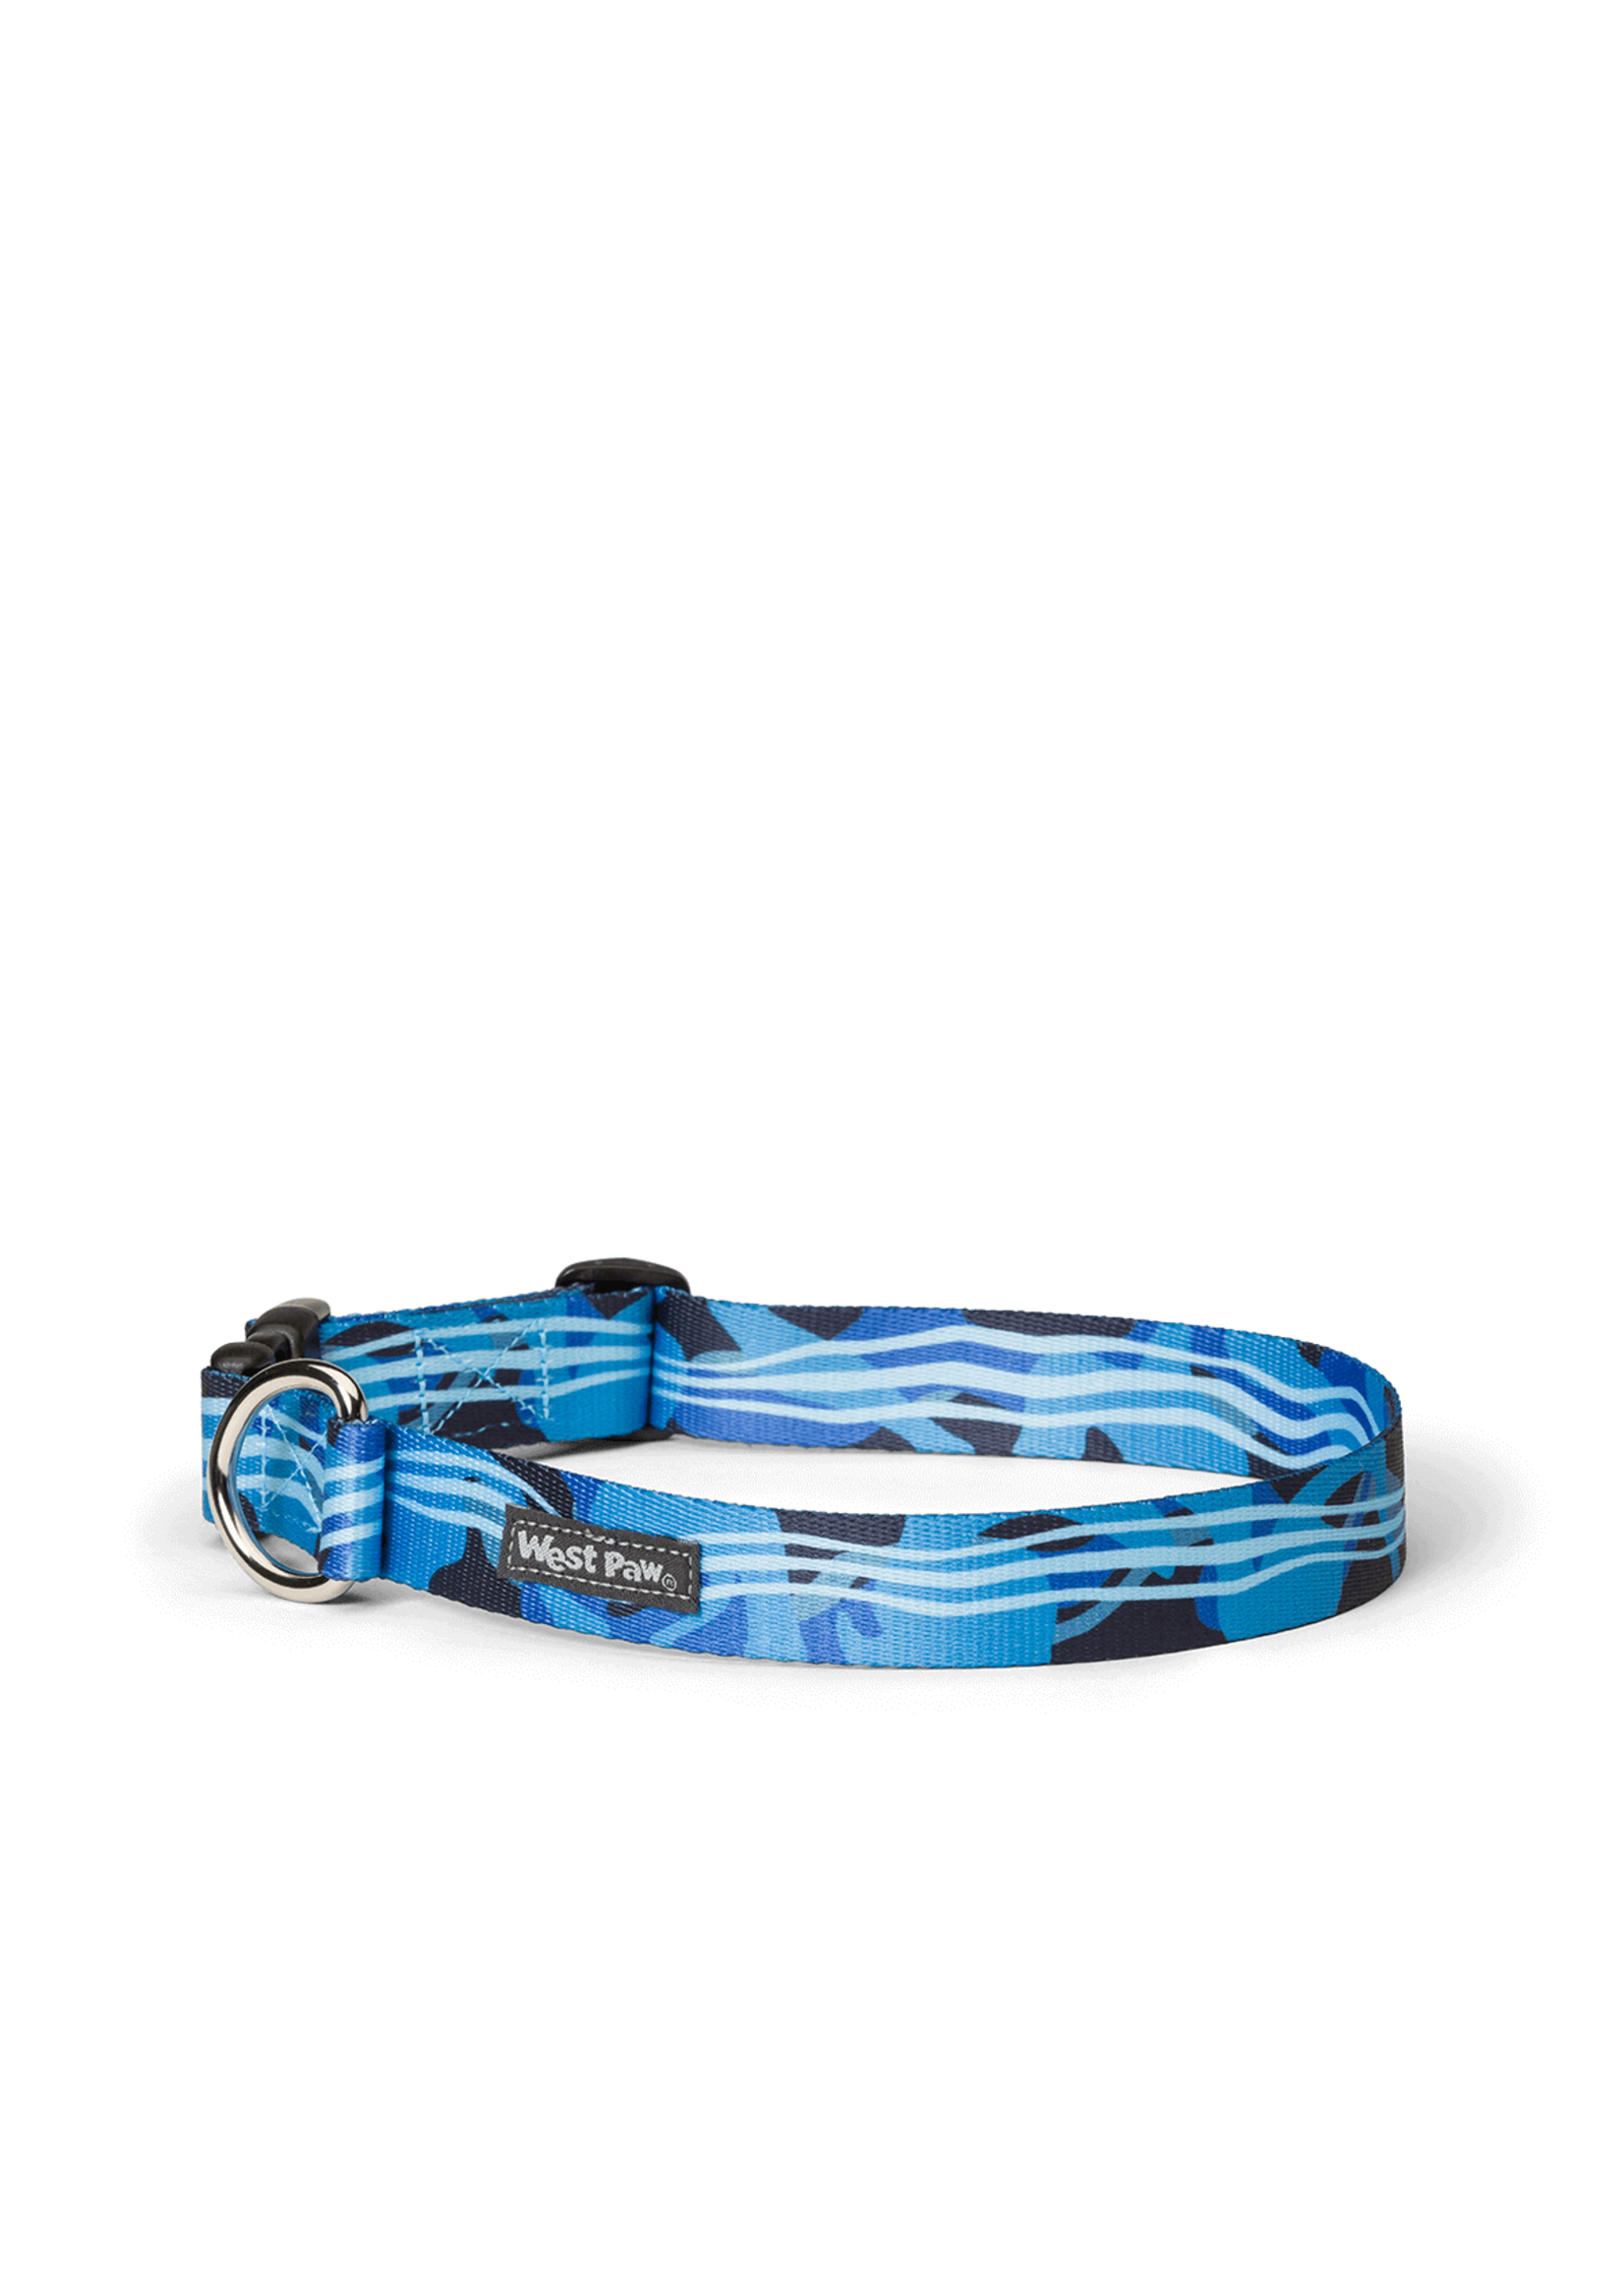 Westpaw West Paw Outings Dog Collar